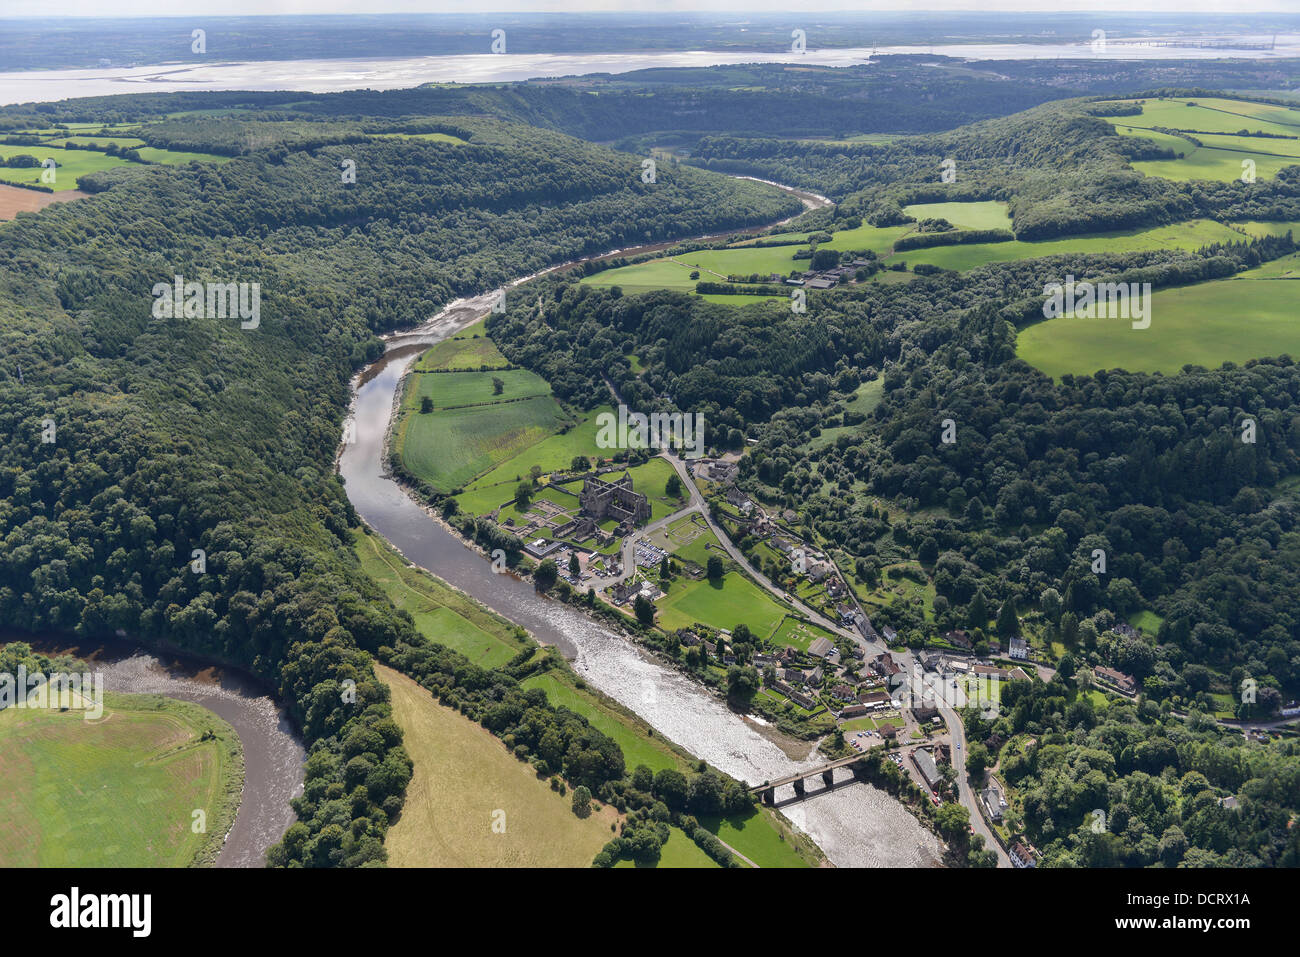 Aerial photograph of the Wye Valley at Tintern Abbey - Stock Image